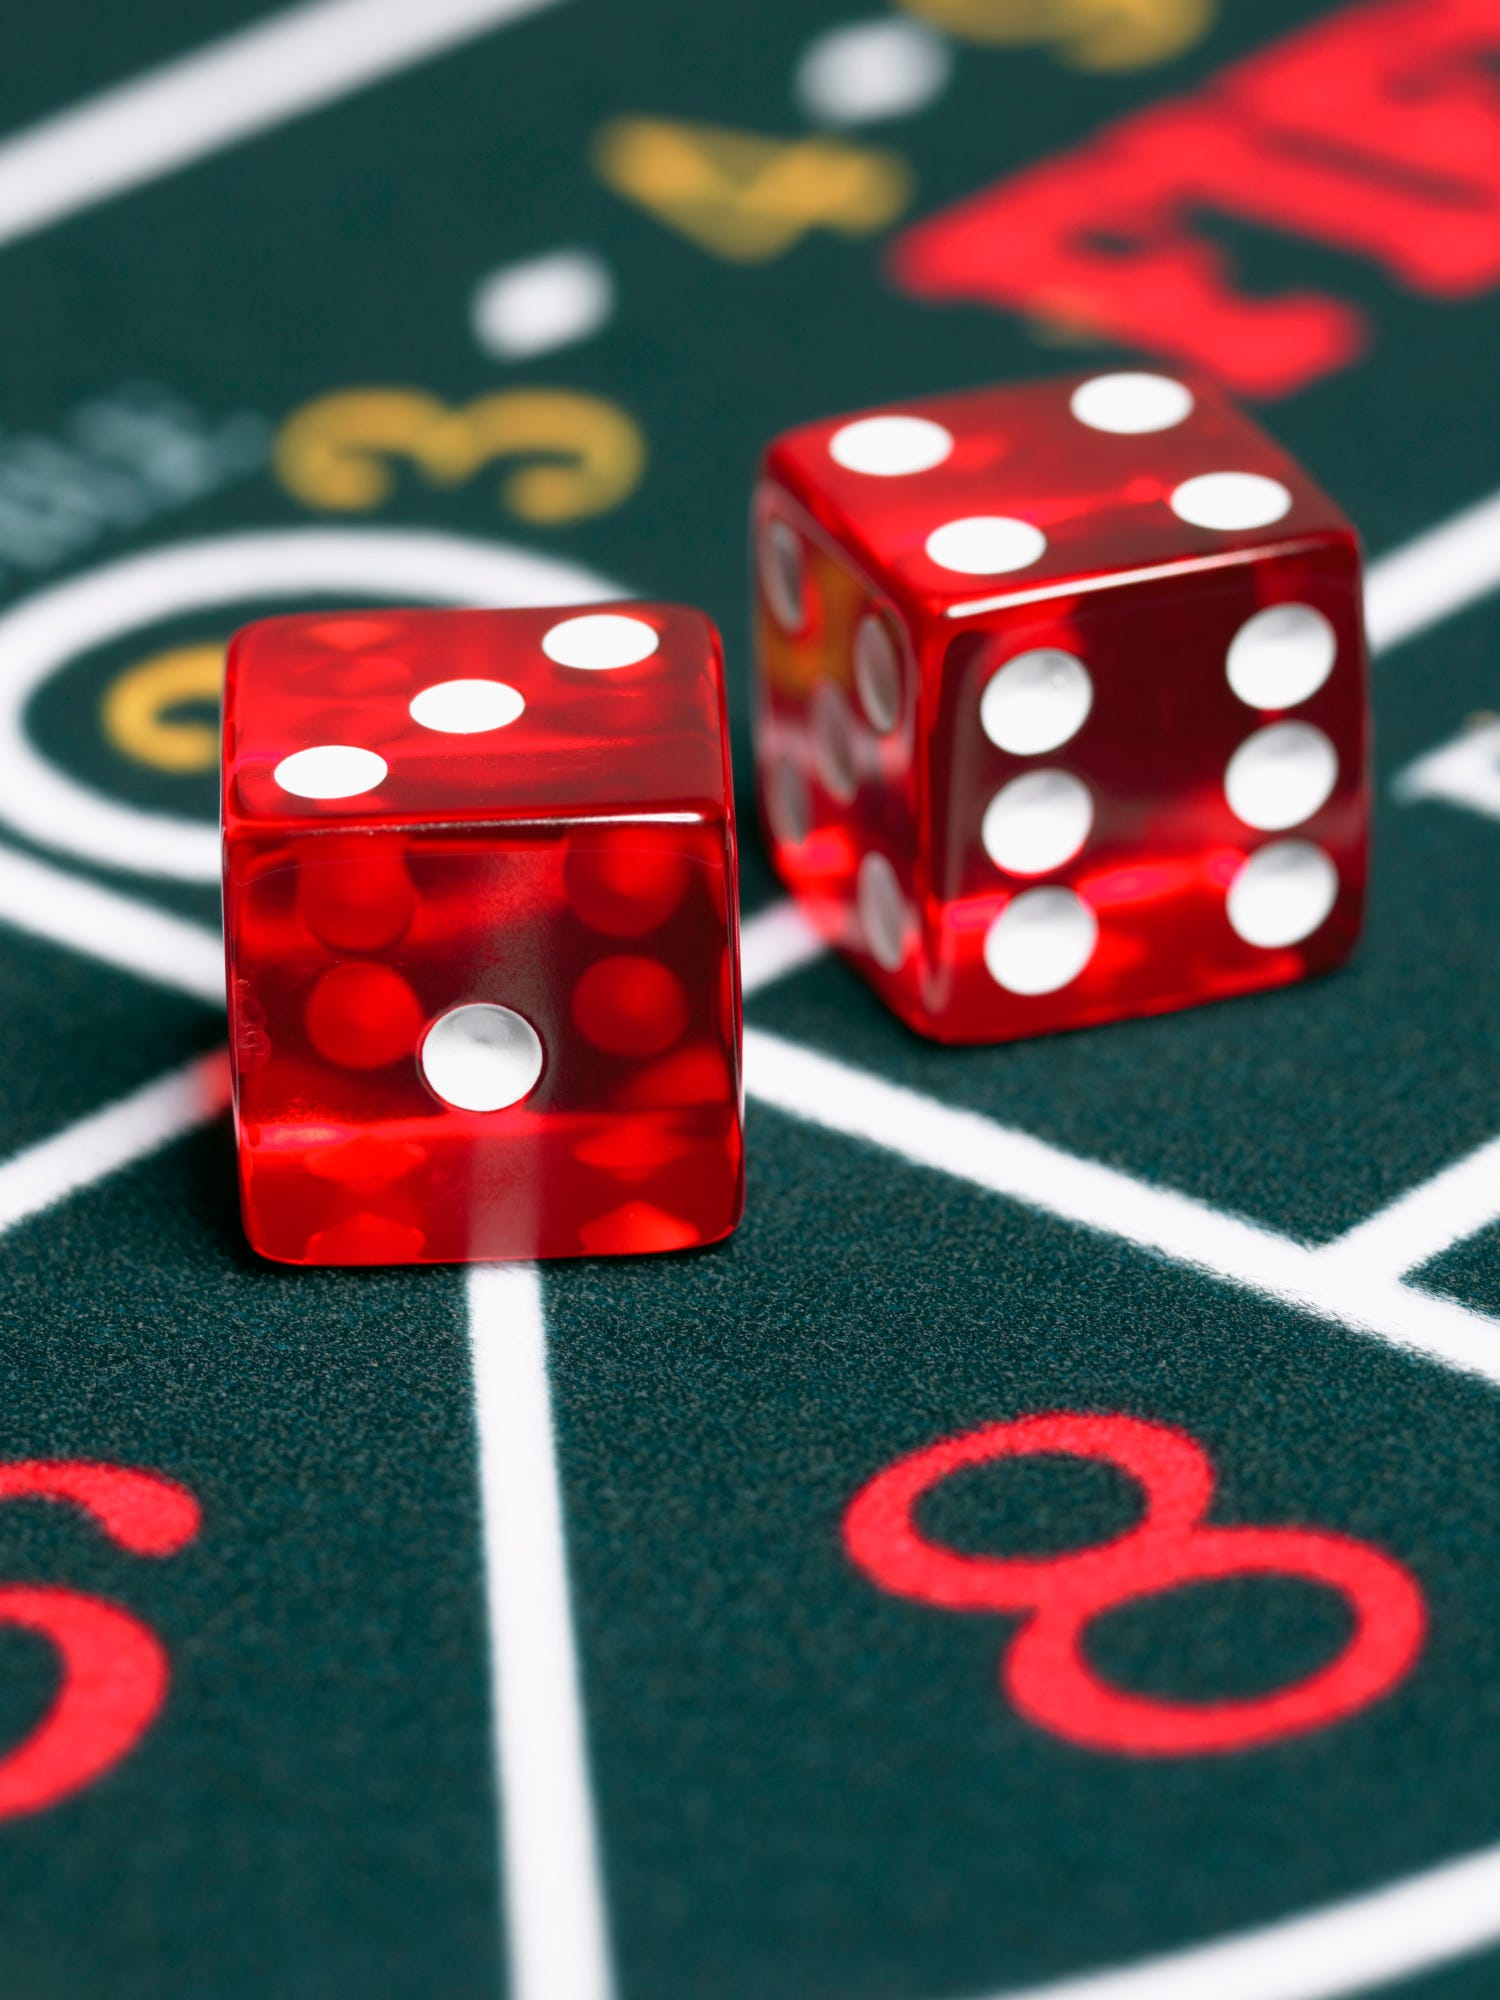 How to win craps table